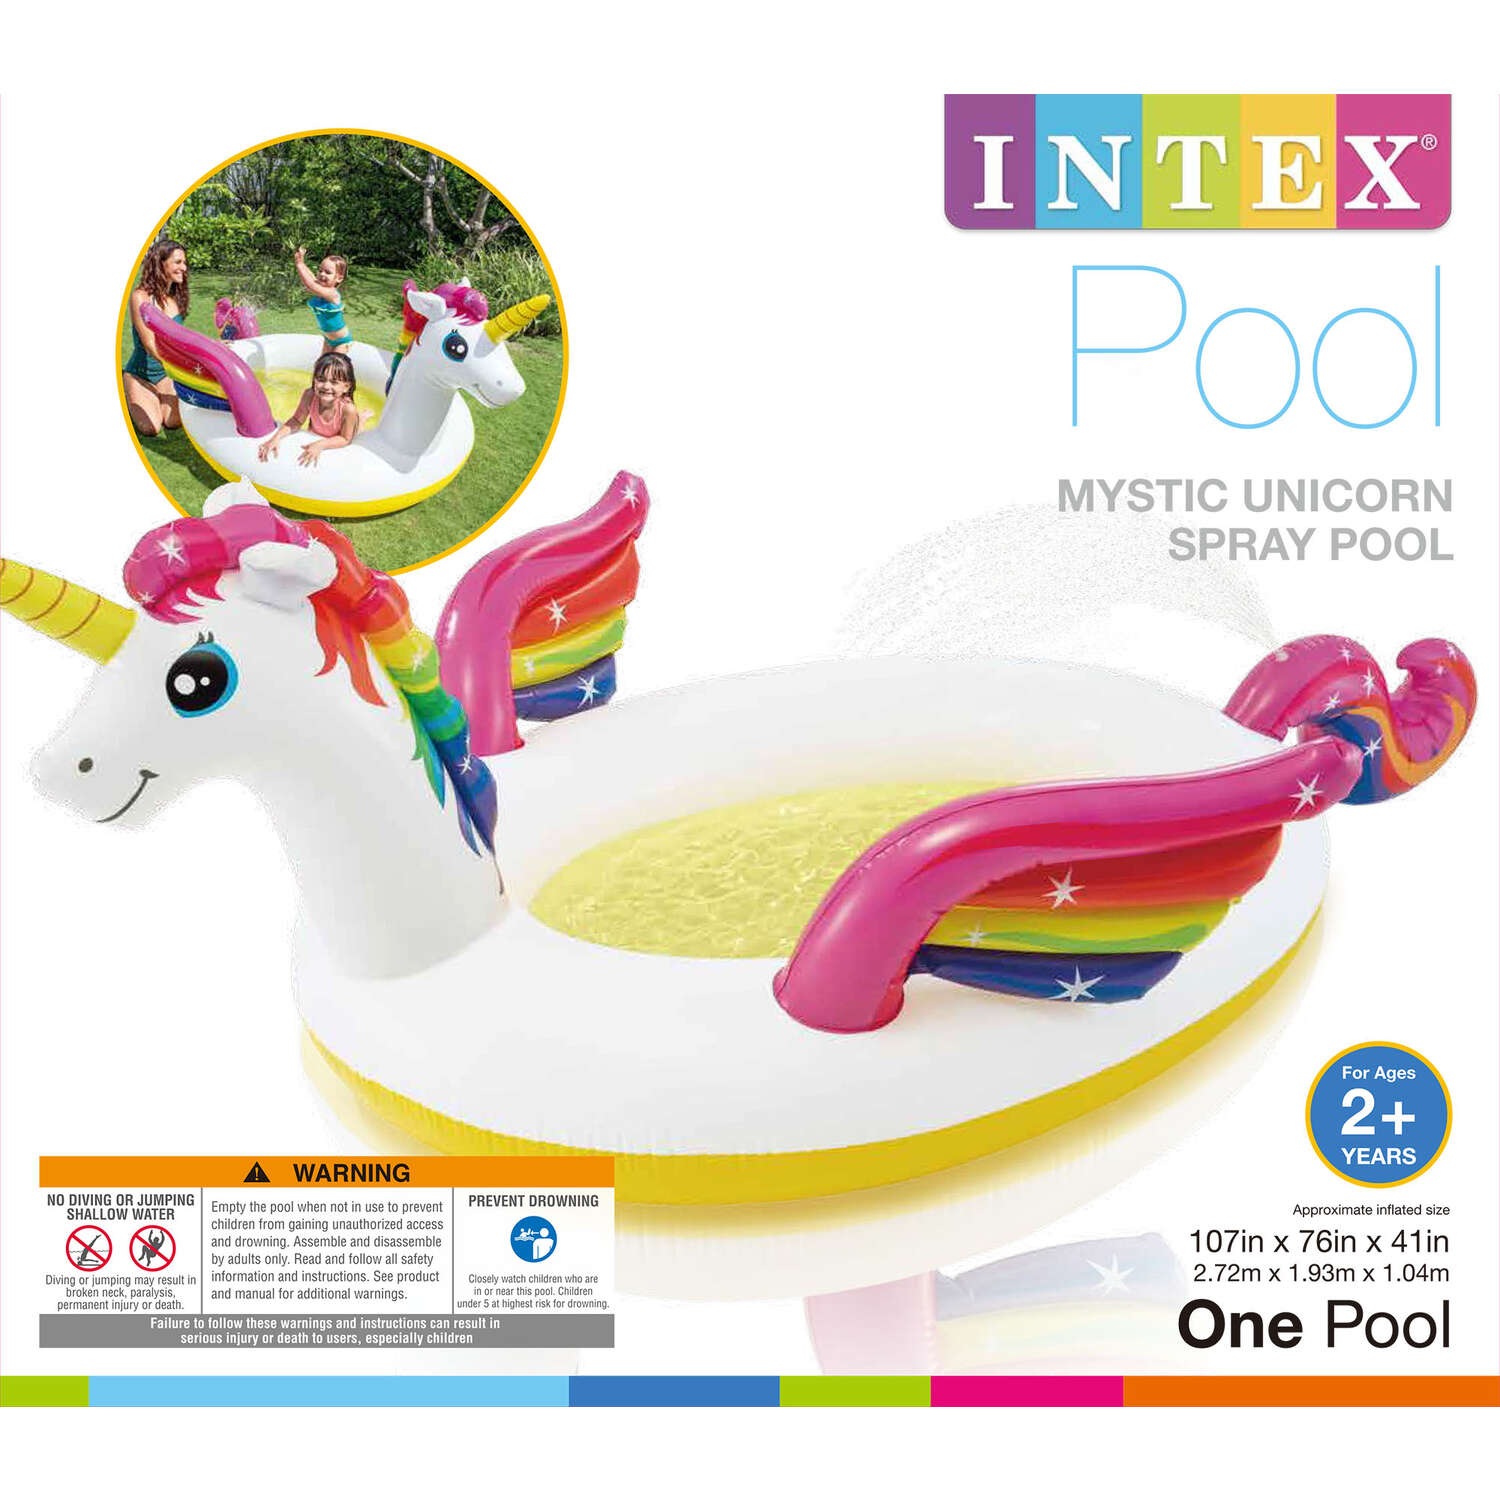 Intex  40 gal. Round  Plastic  Inflatable Pool  41 in. H x 76 in. W x 107 in. L x 6.3 ft. Dia.